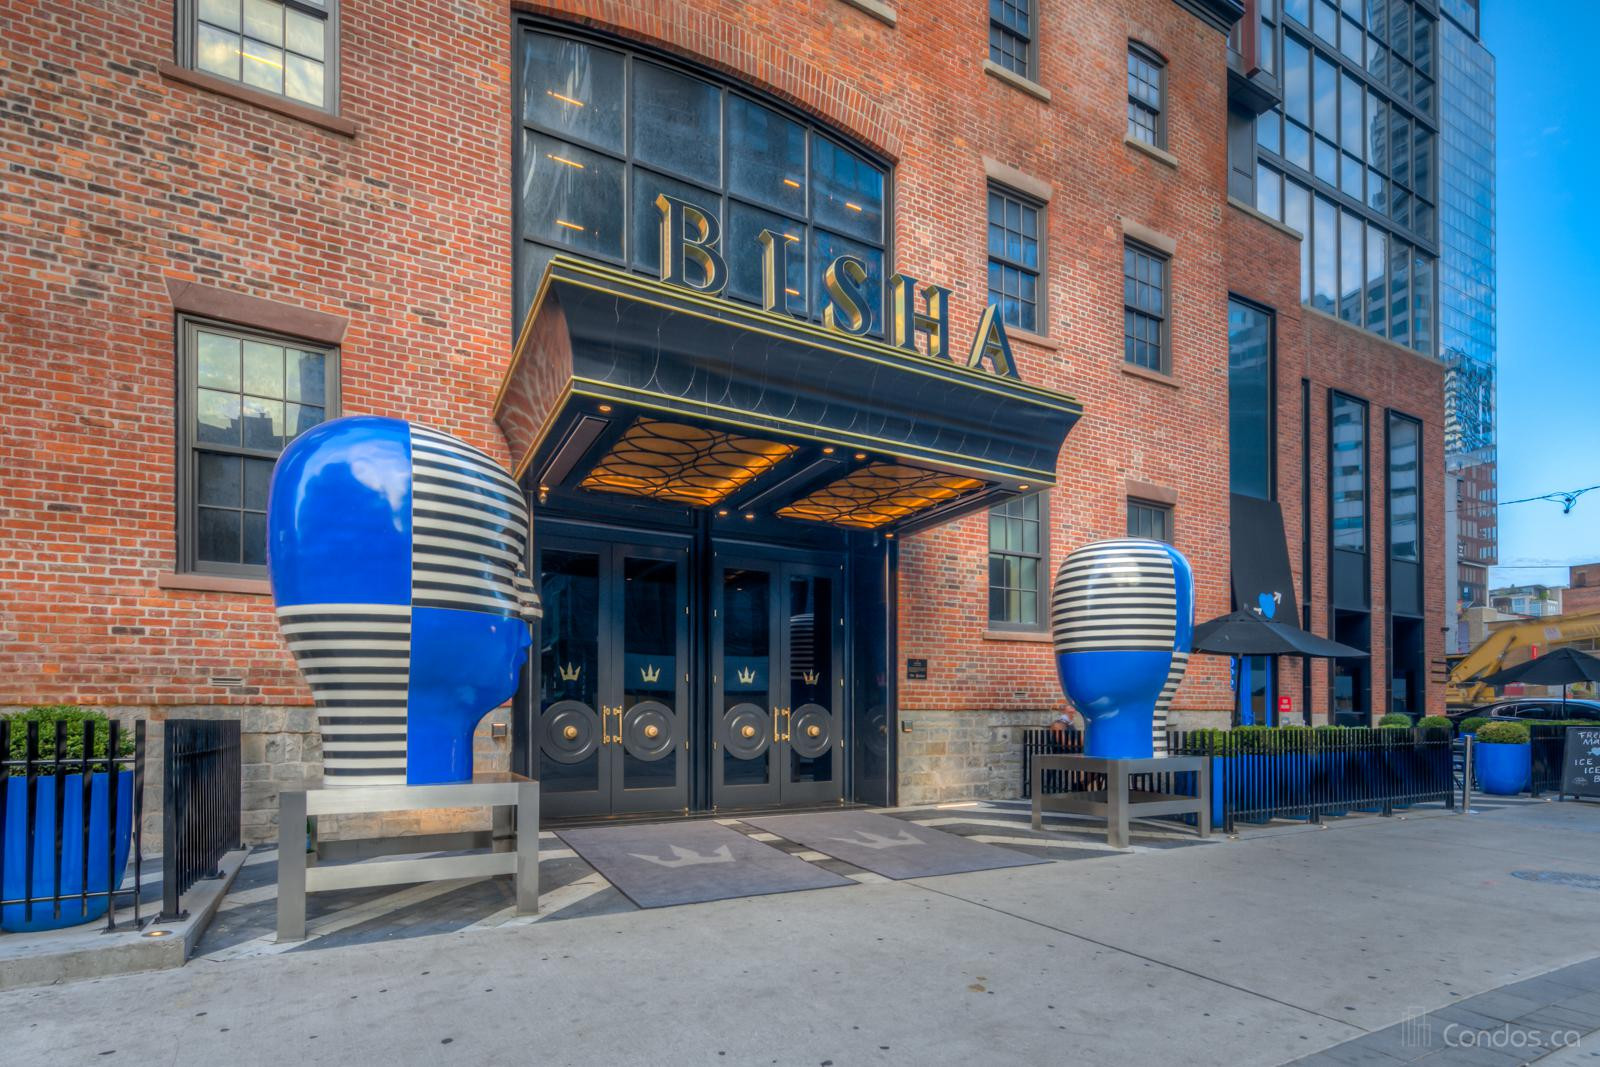 Bisha Hotel & Residences at 88 Blue Jays Way, Toronto 1